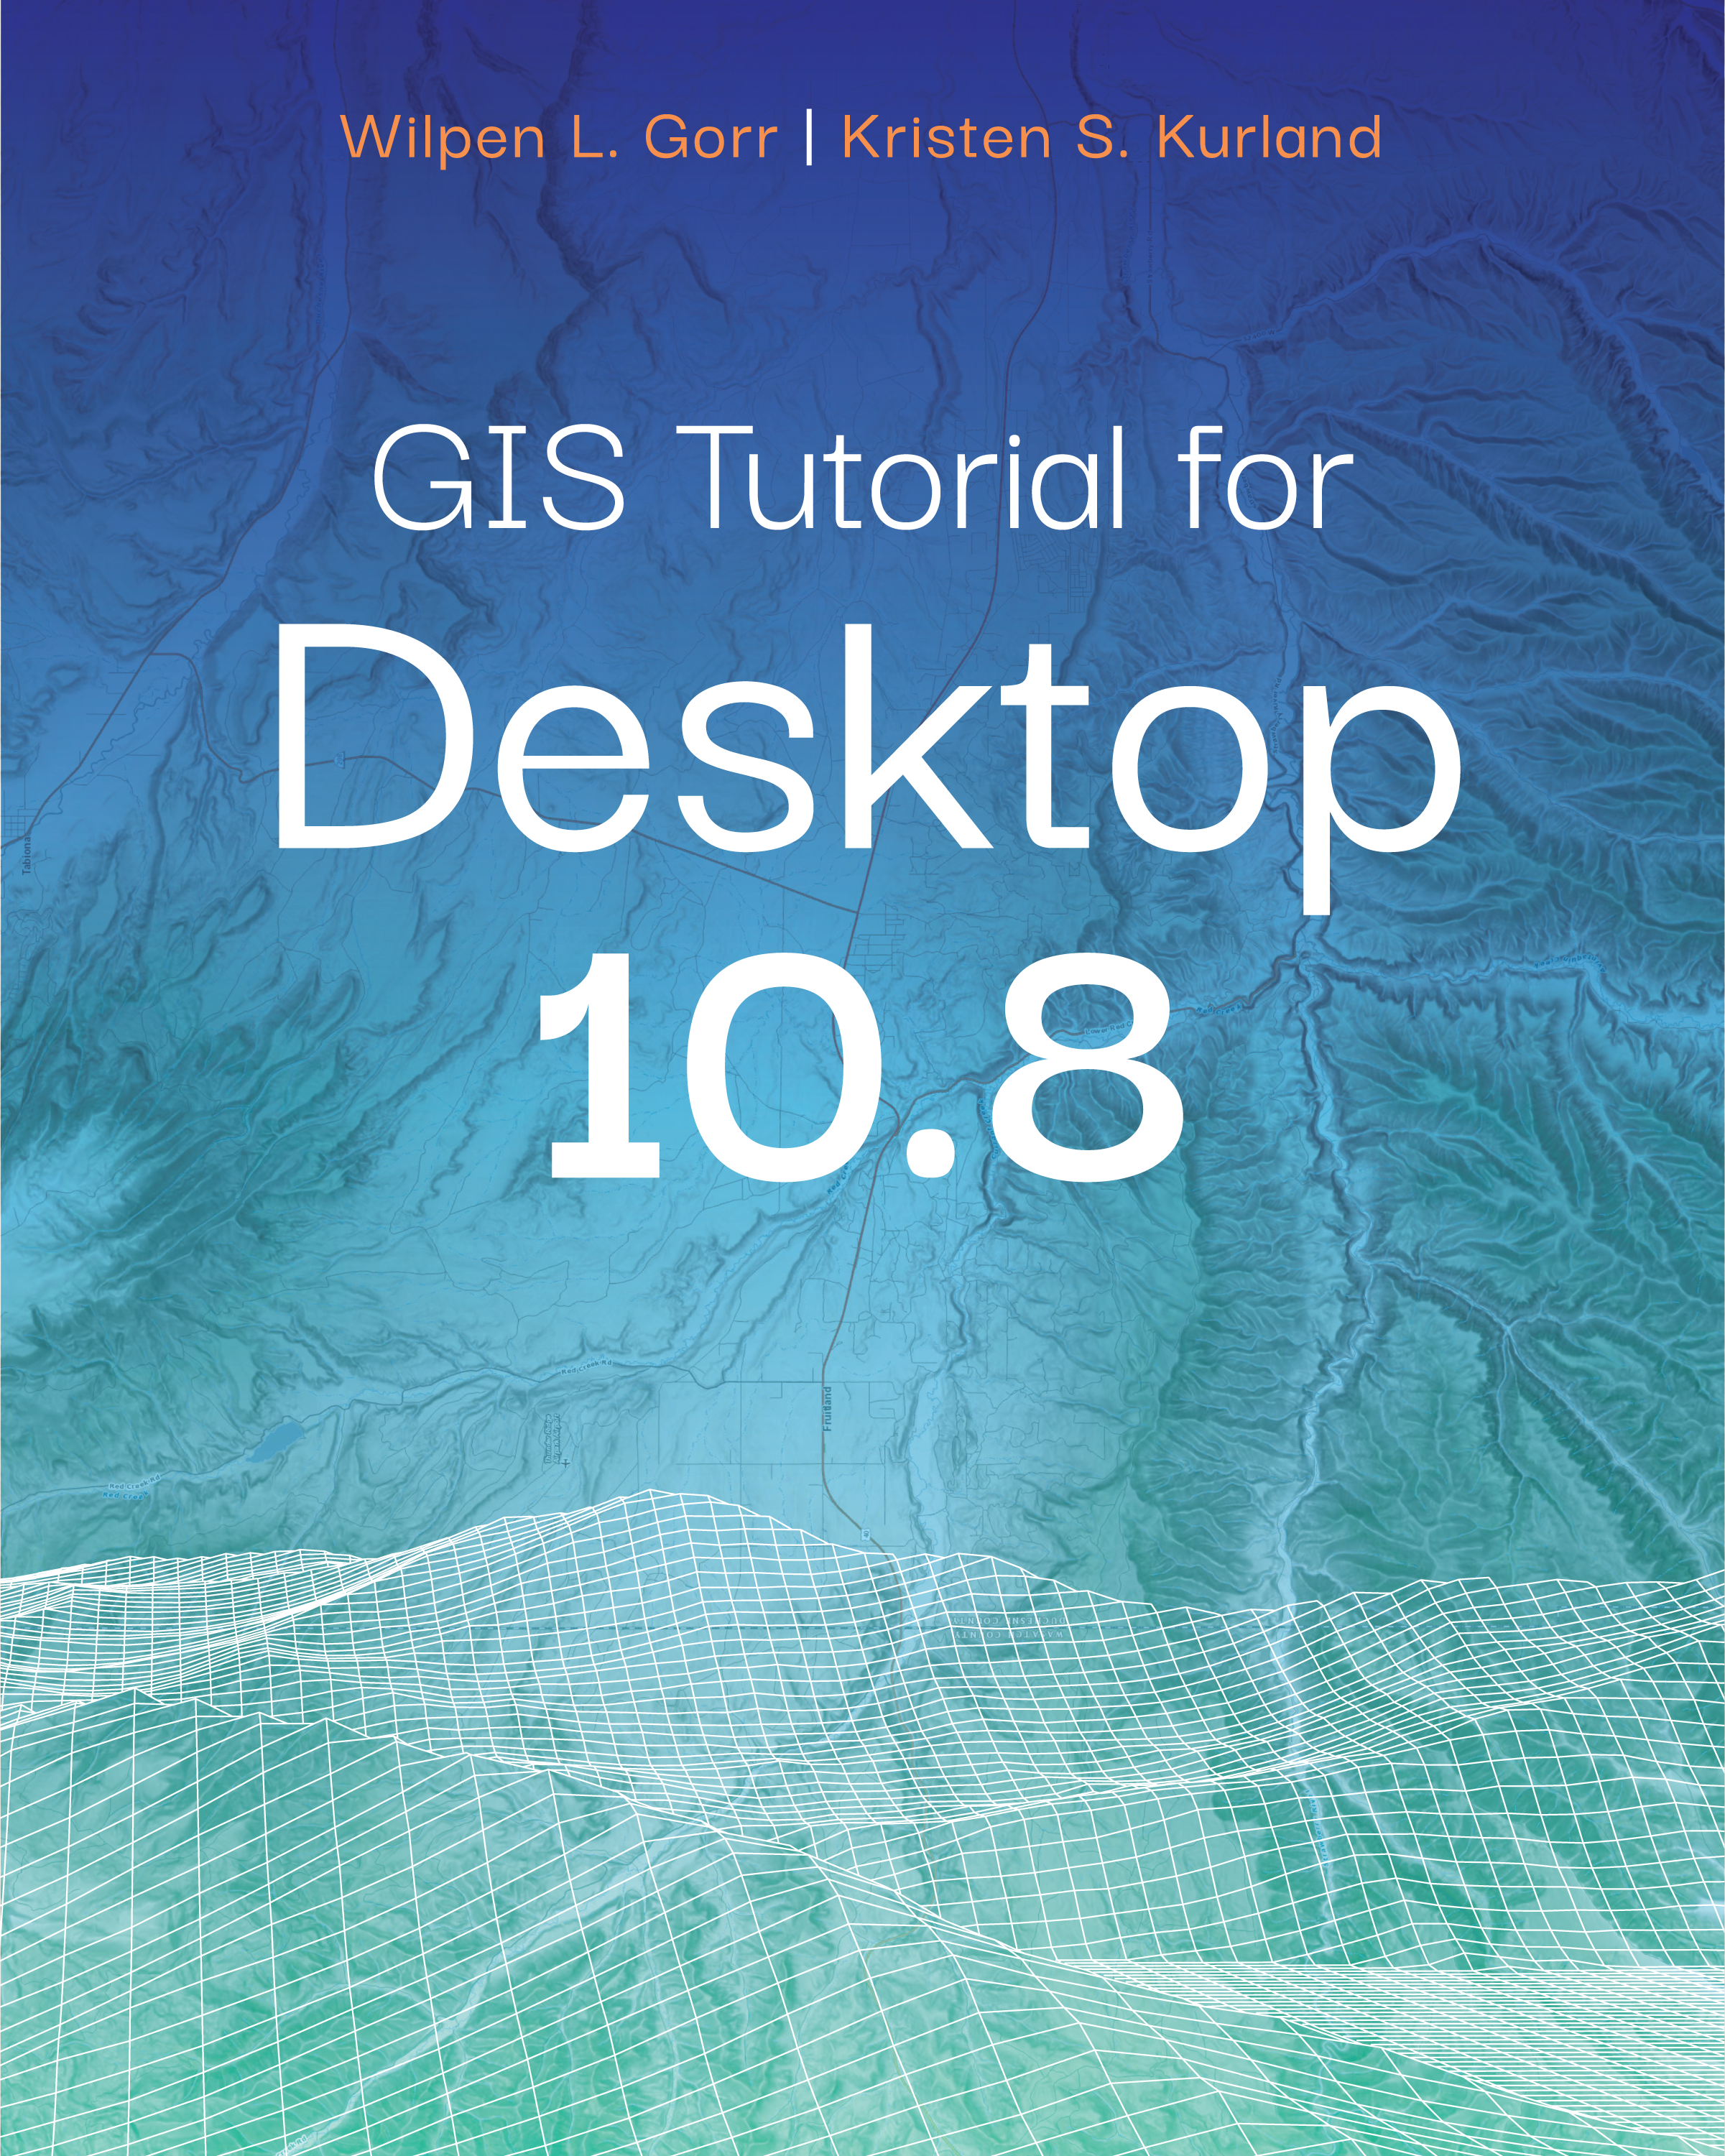 GIS Tutorial for ArcGIS Desktop 10.8 book cover